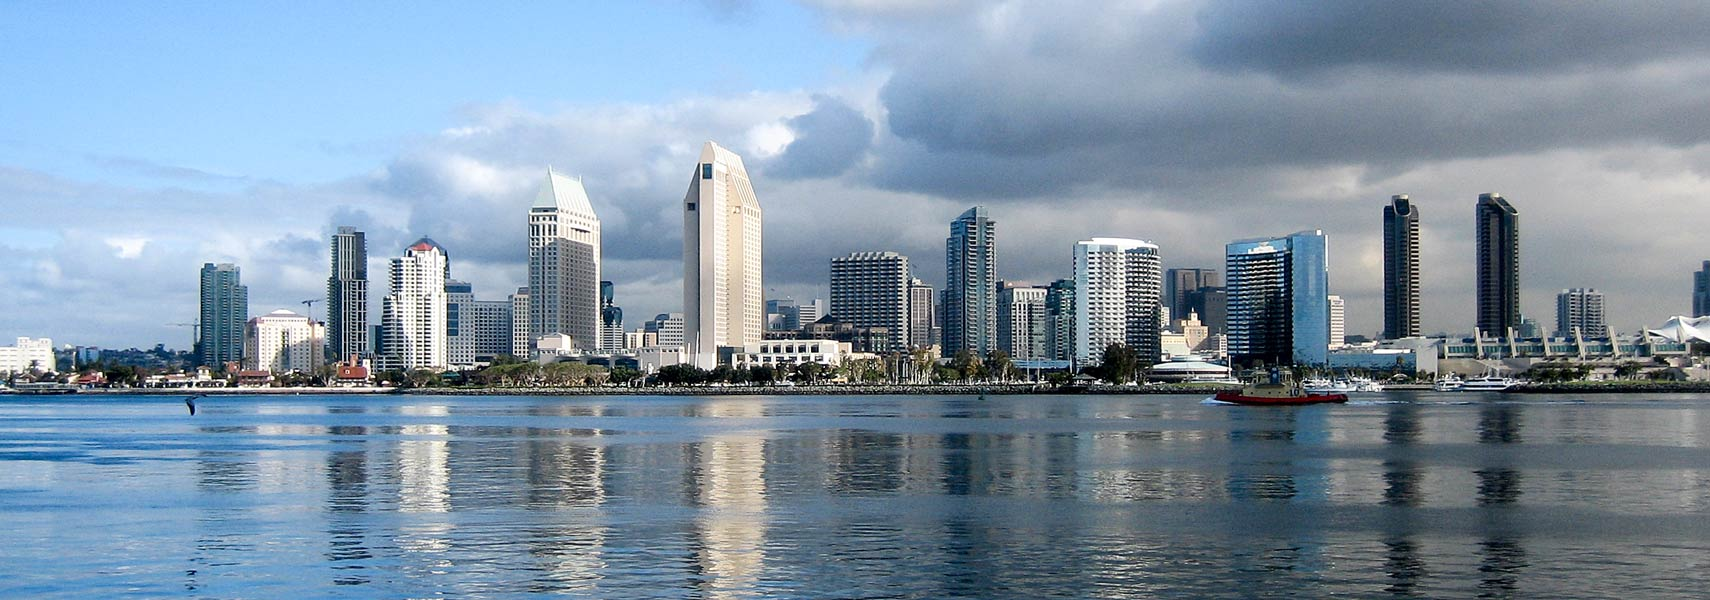 San Diego Map City.Google Map Of The City Of San Diego California Nations Online Project